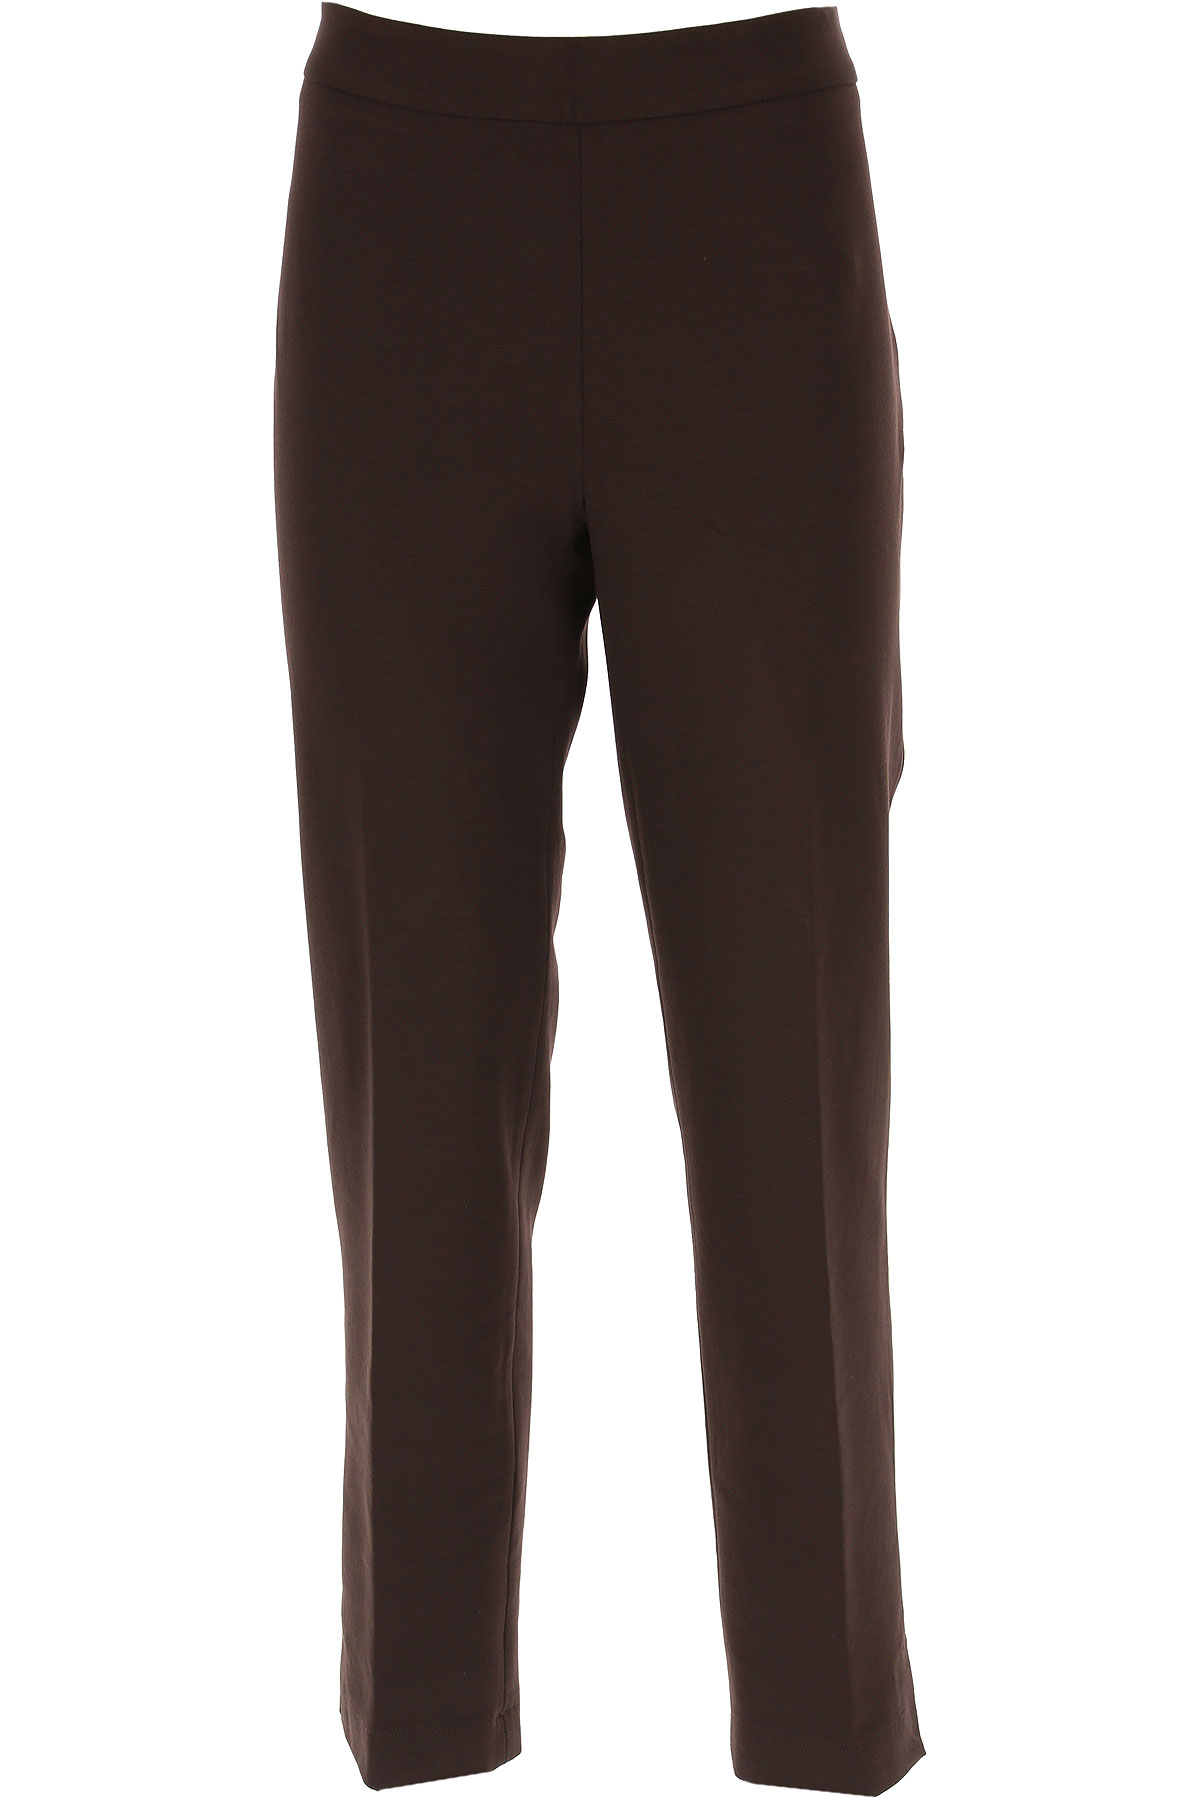 Liviana Conti Pants for Women On Sale, Ebony, Viscose, 2019, 6 8